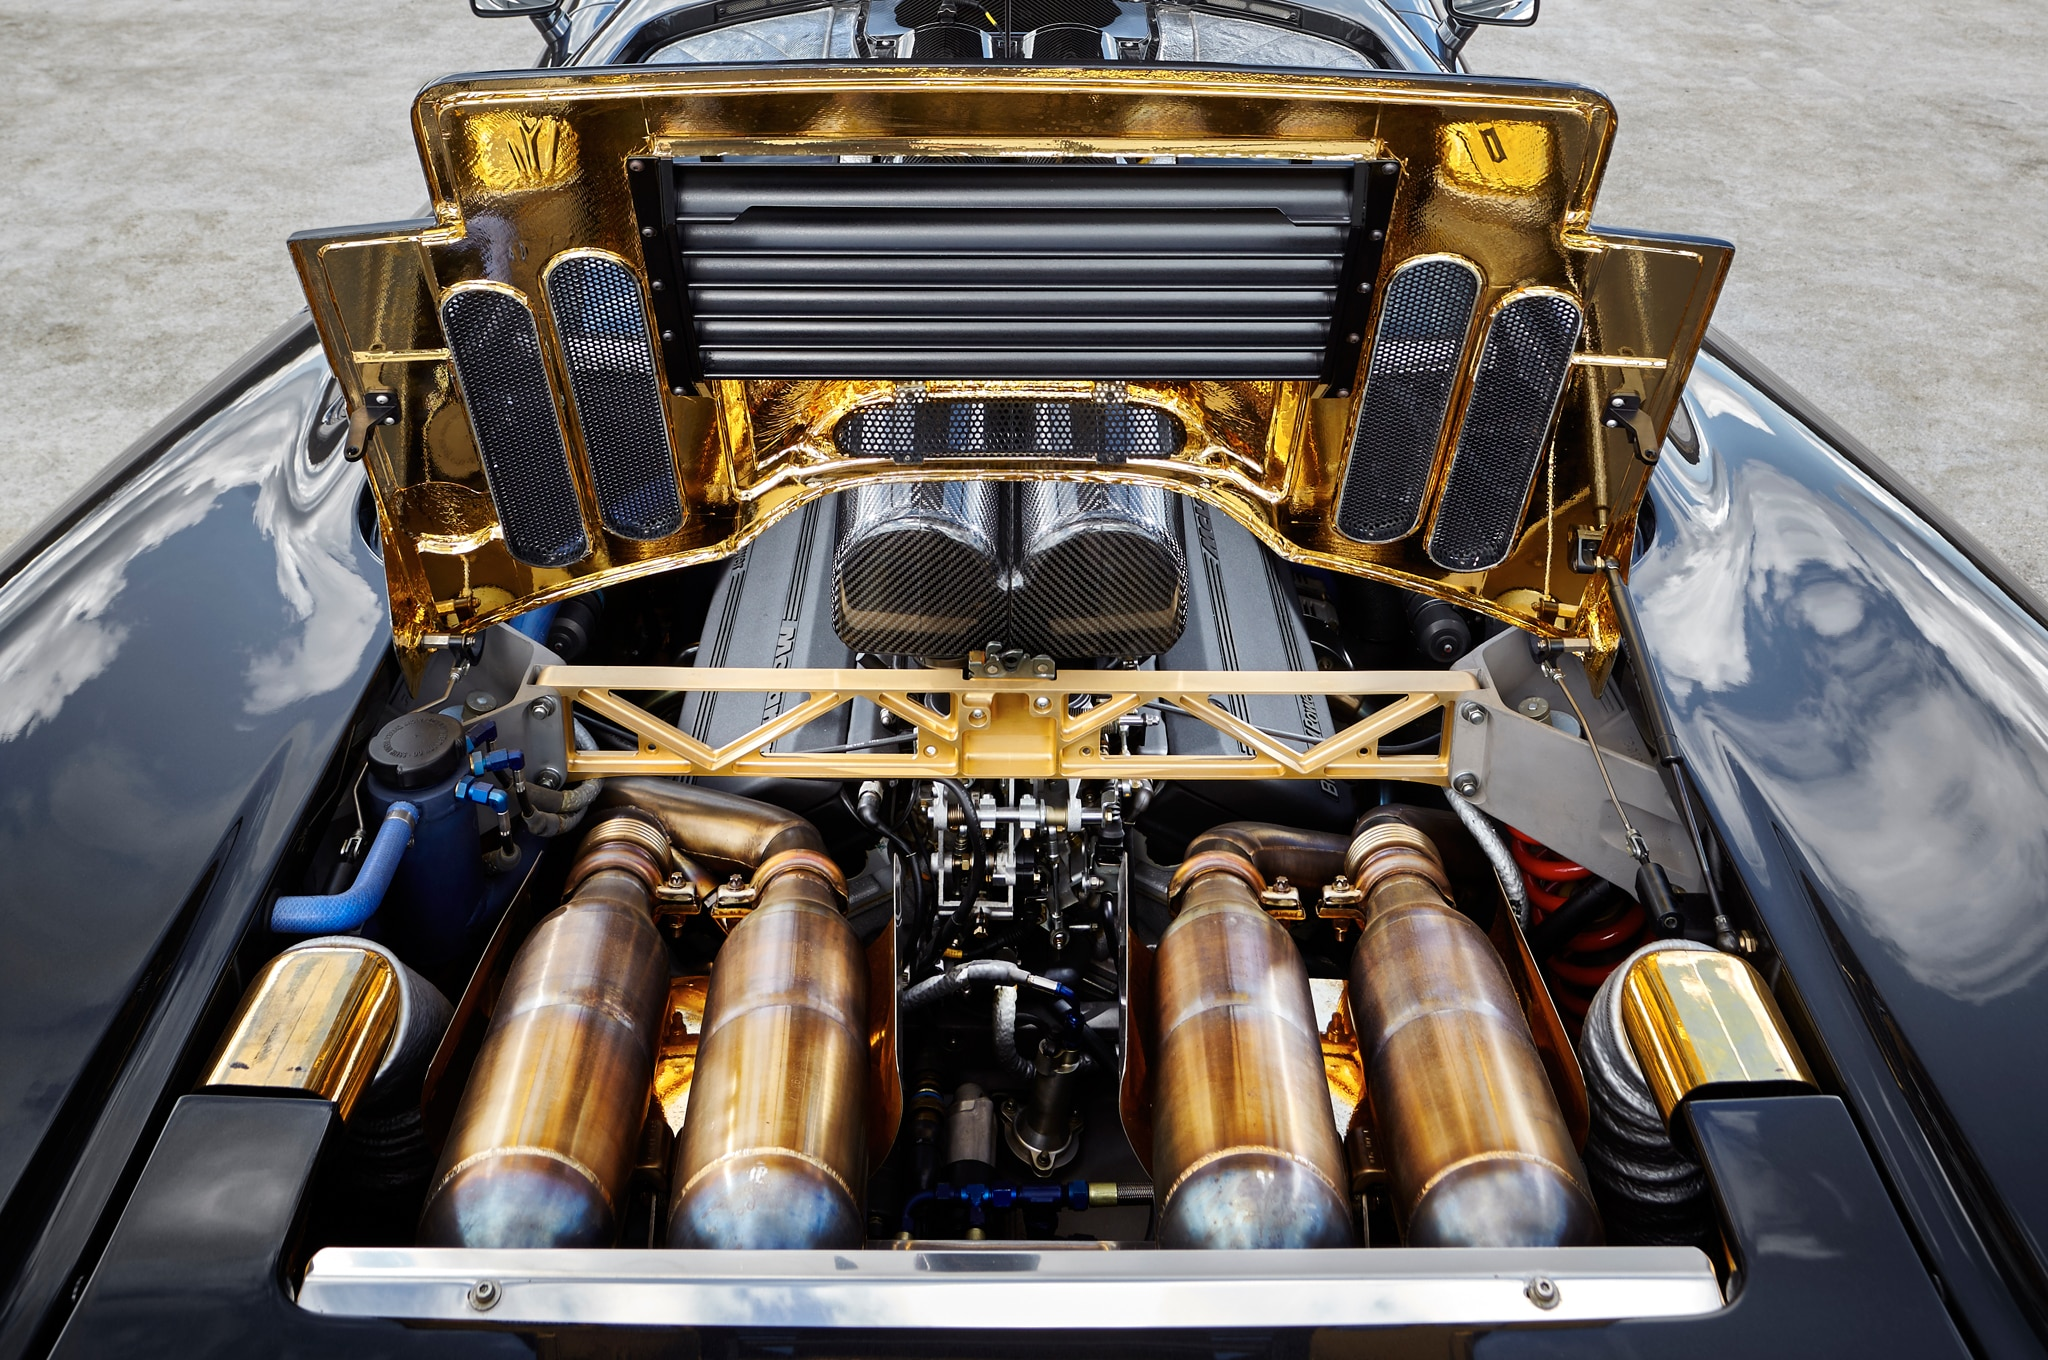 hight resolution of mclaren f1 chassis 069 engine 02